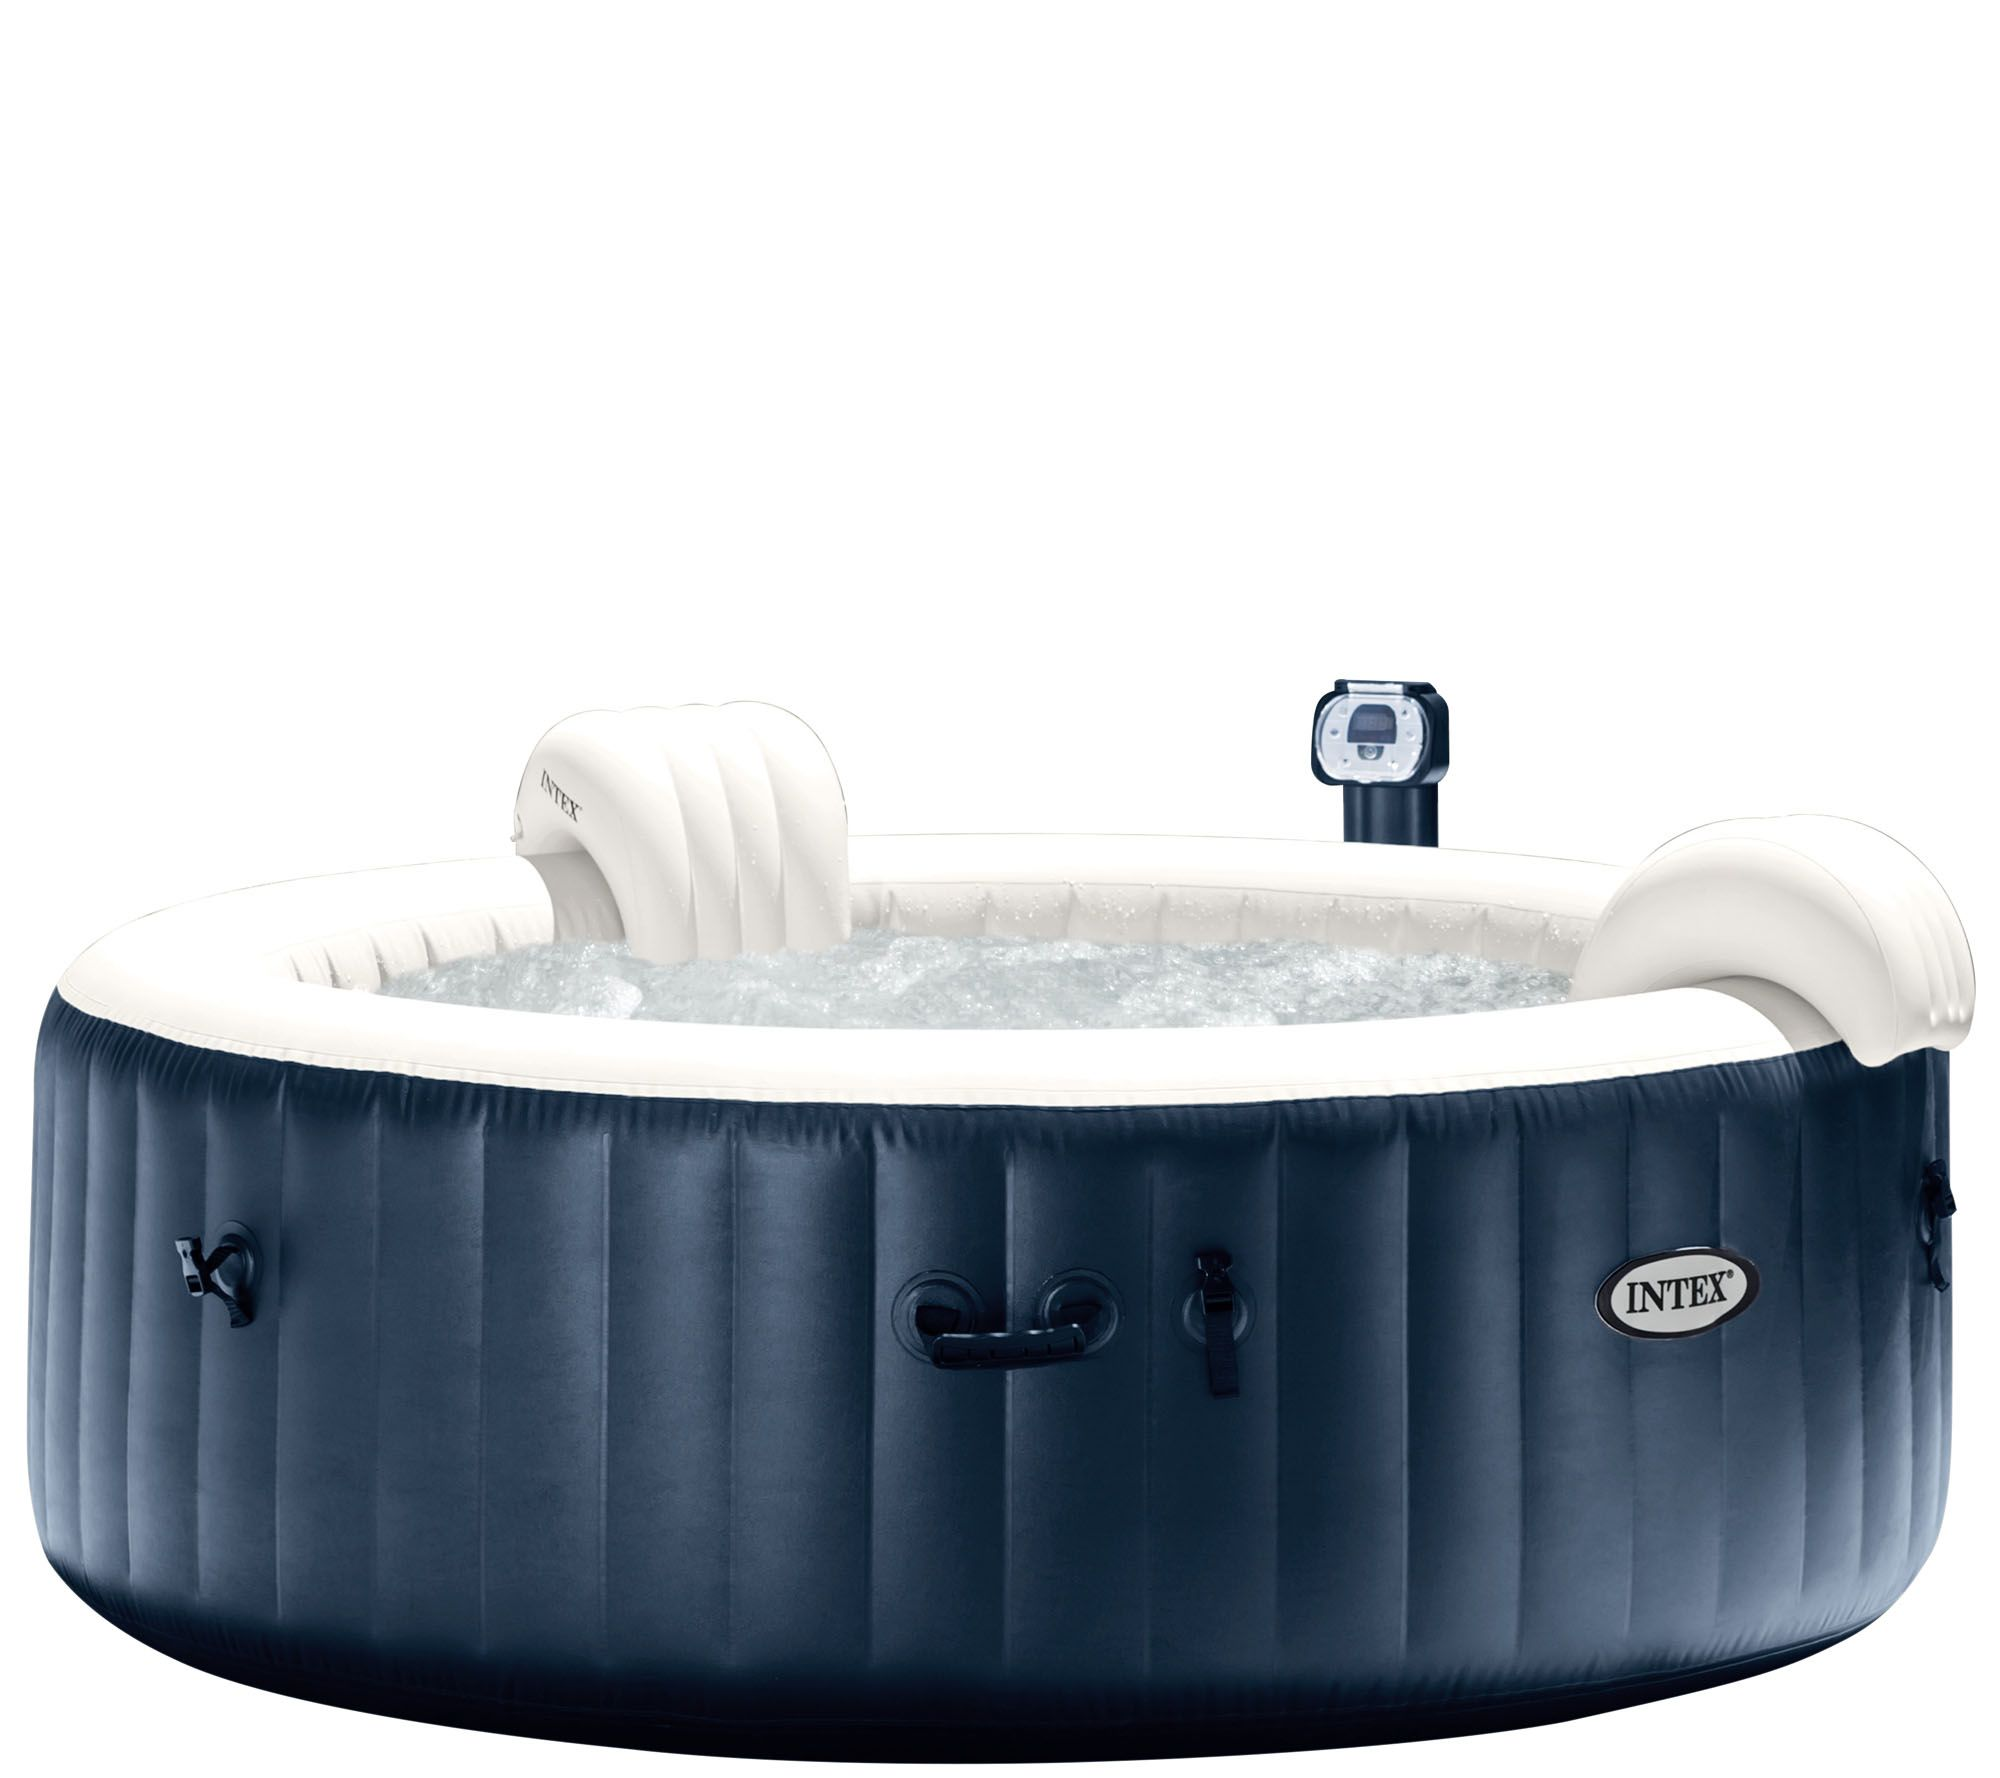 intex pure spa portable hot tub w headrests extra filters page 1. Black Bedroom Furniture Sets. Home Design Ideas